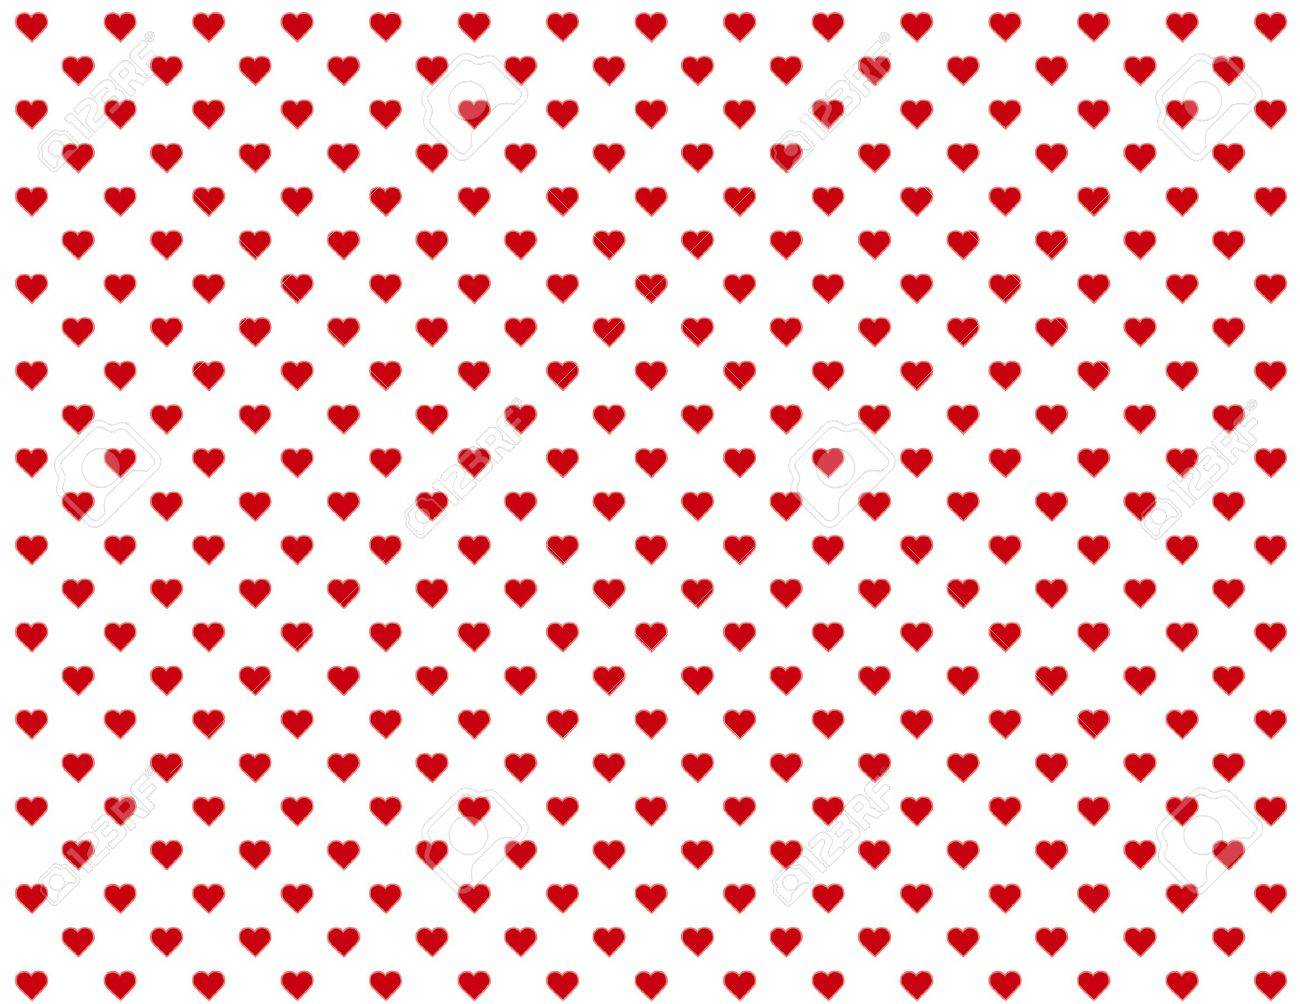 Seamless Background Tiny Red Heart Design Pattern For Valentines Royalty Free Cliparts Vectors And Stock Illustration Image 11553667